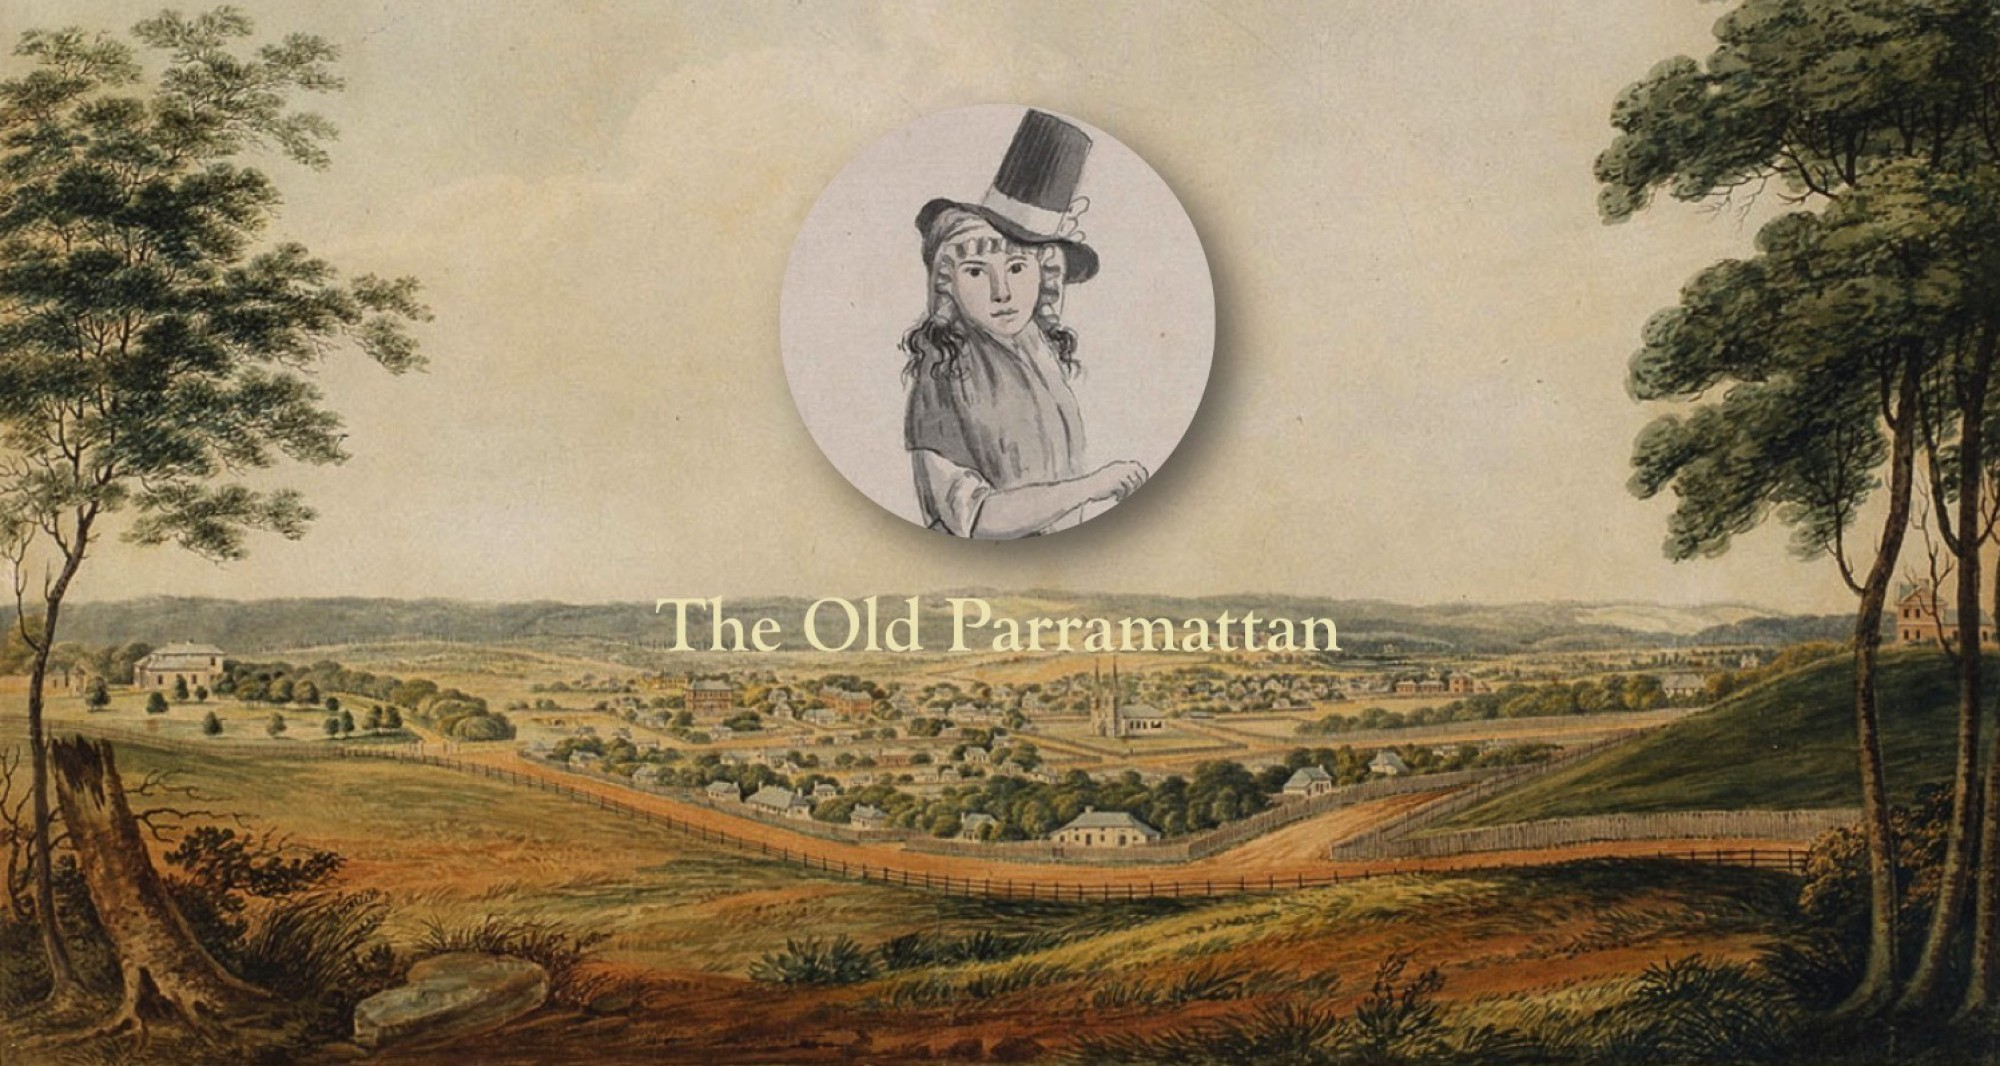 The Old Parramattan